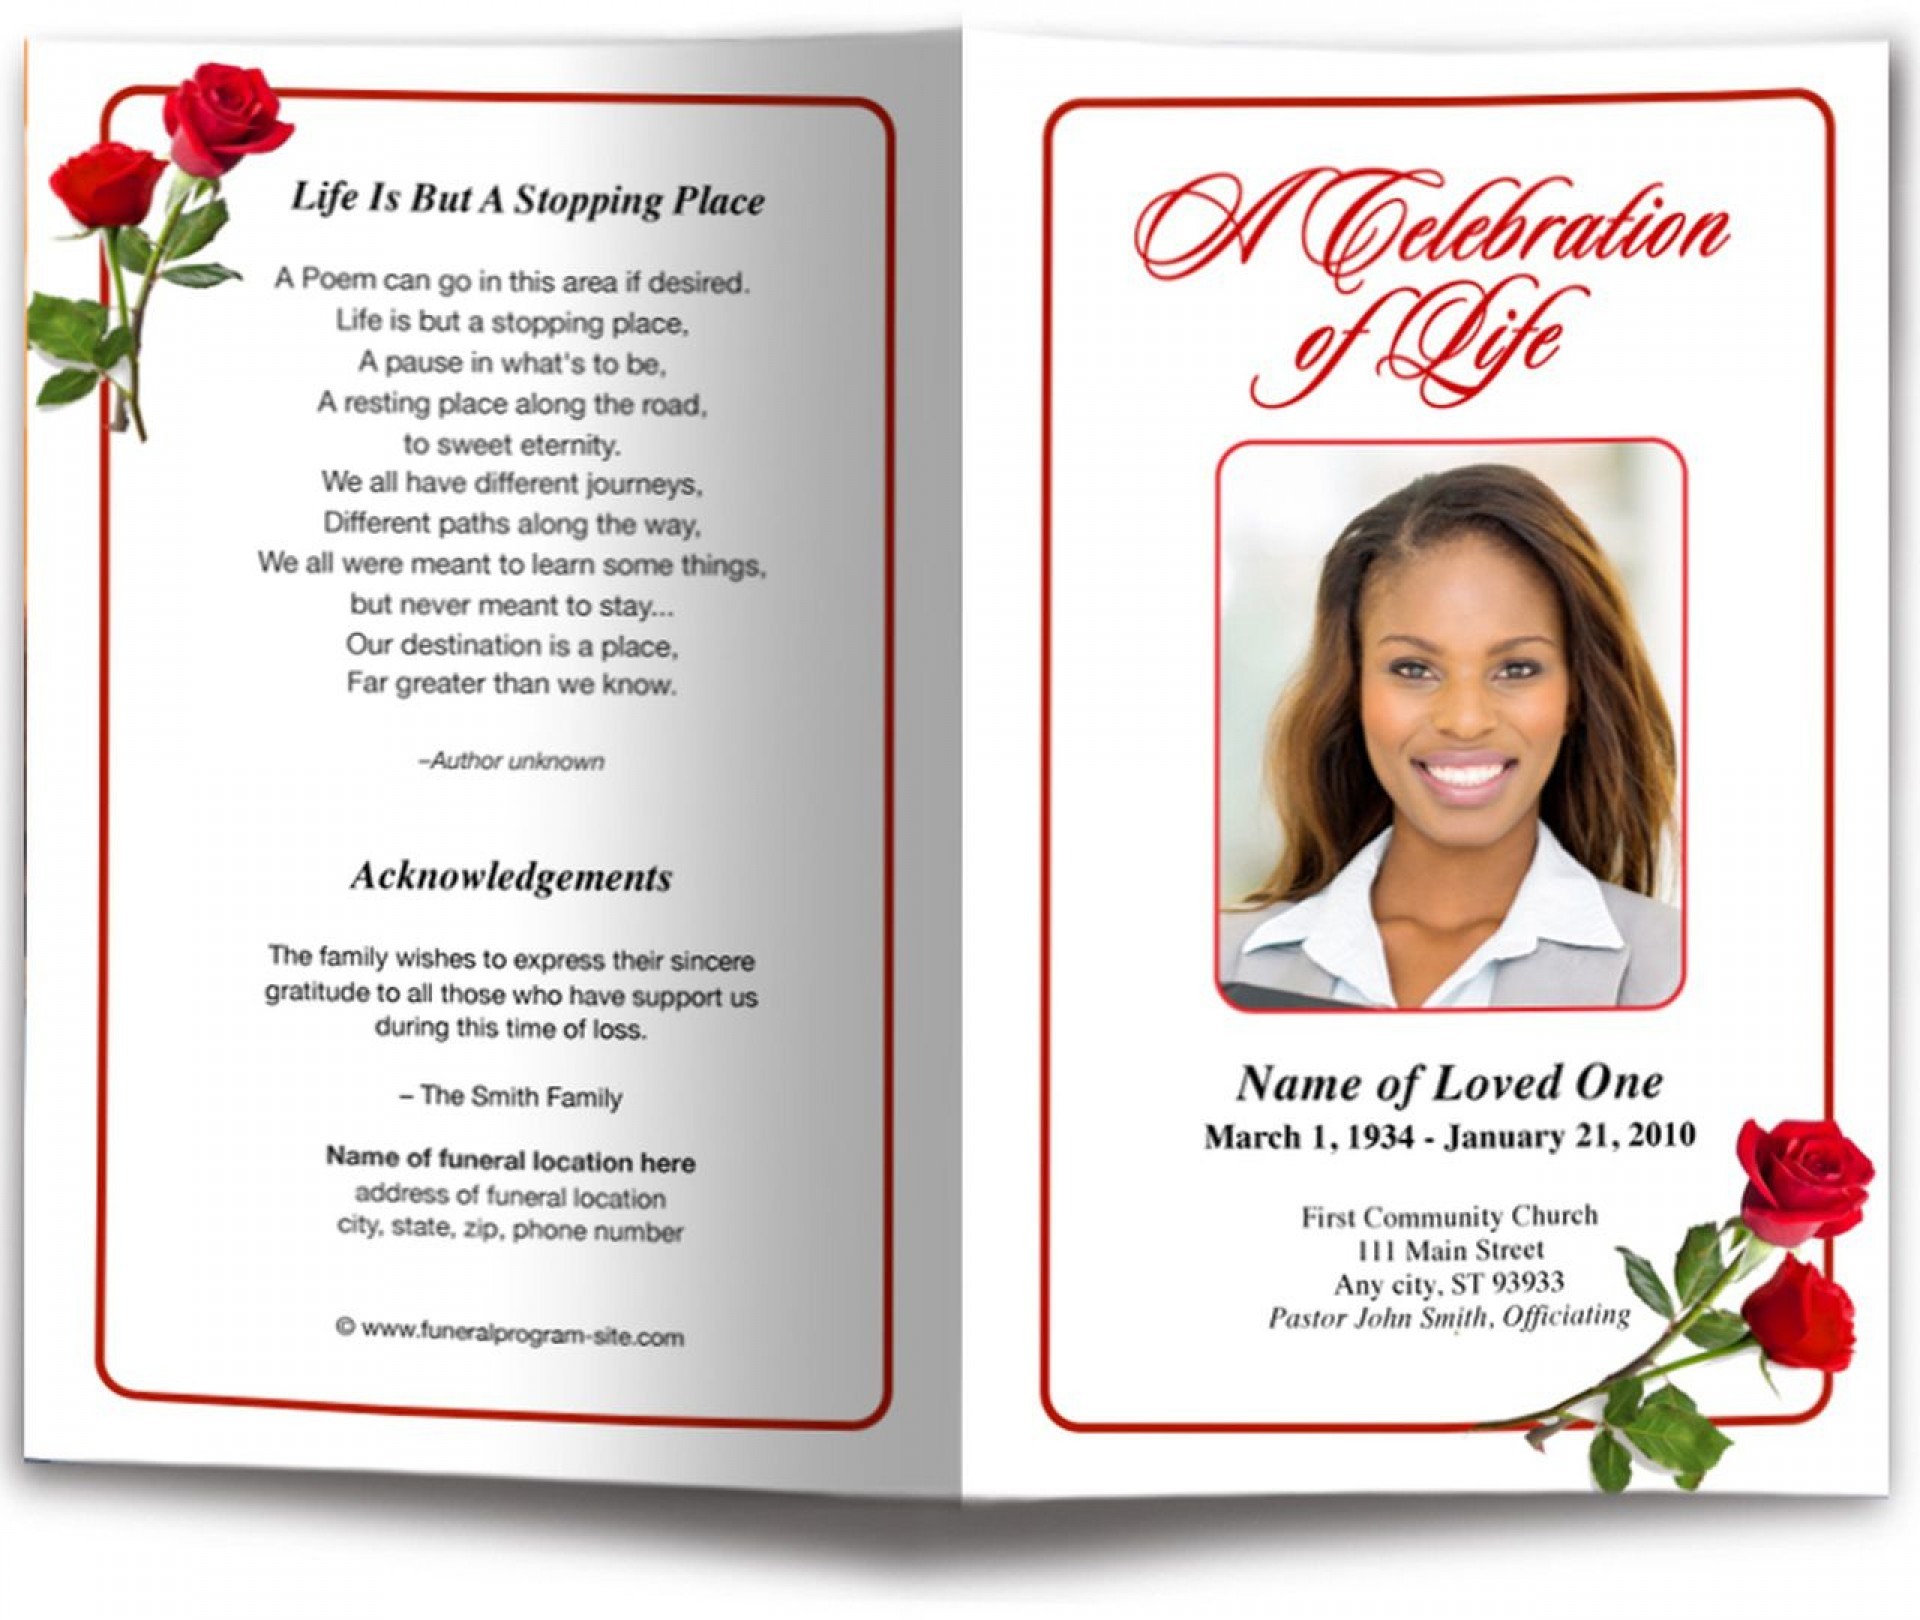 006 Incredible Funeral Program Template Free Inspiration  Printable Design1920